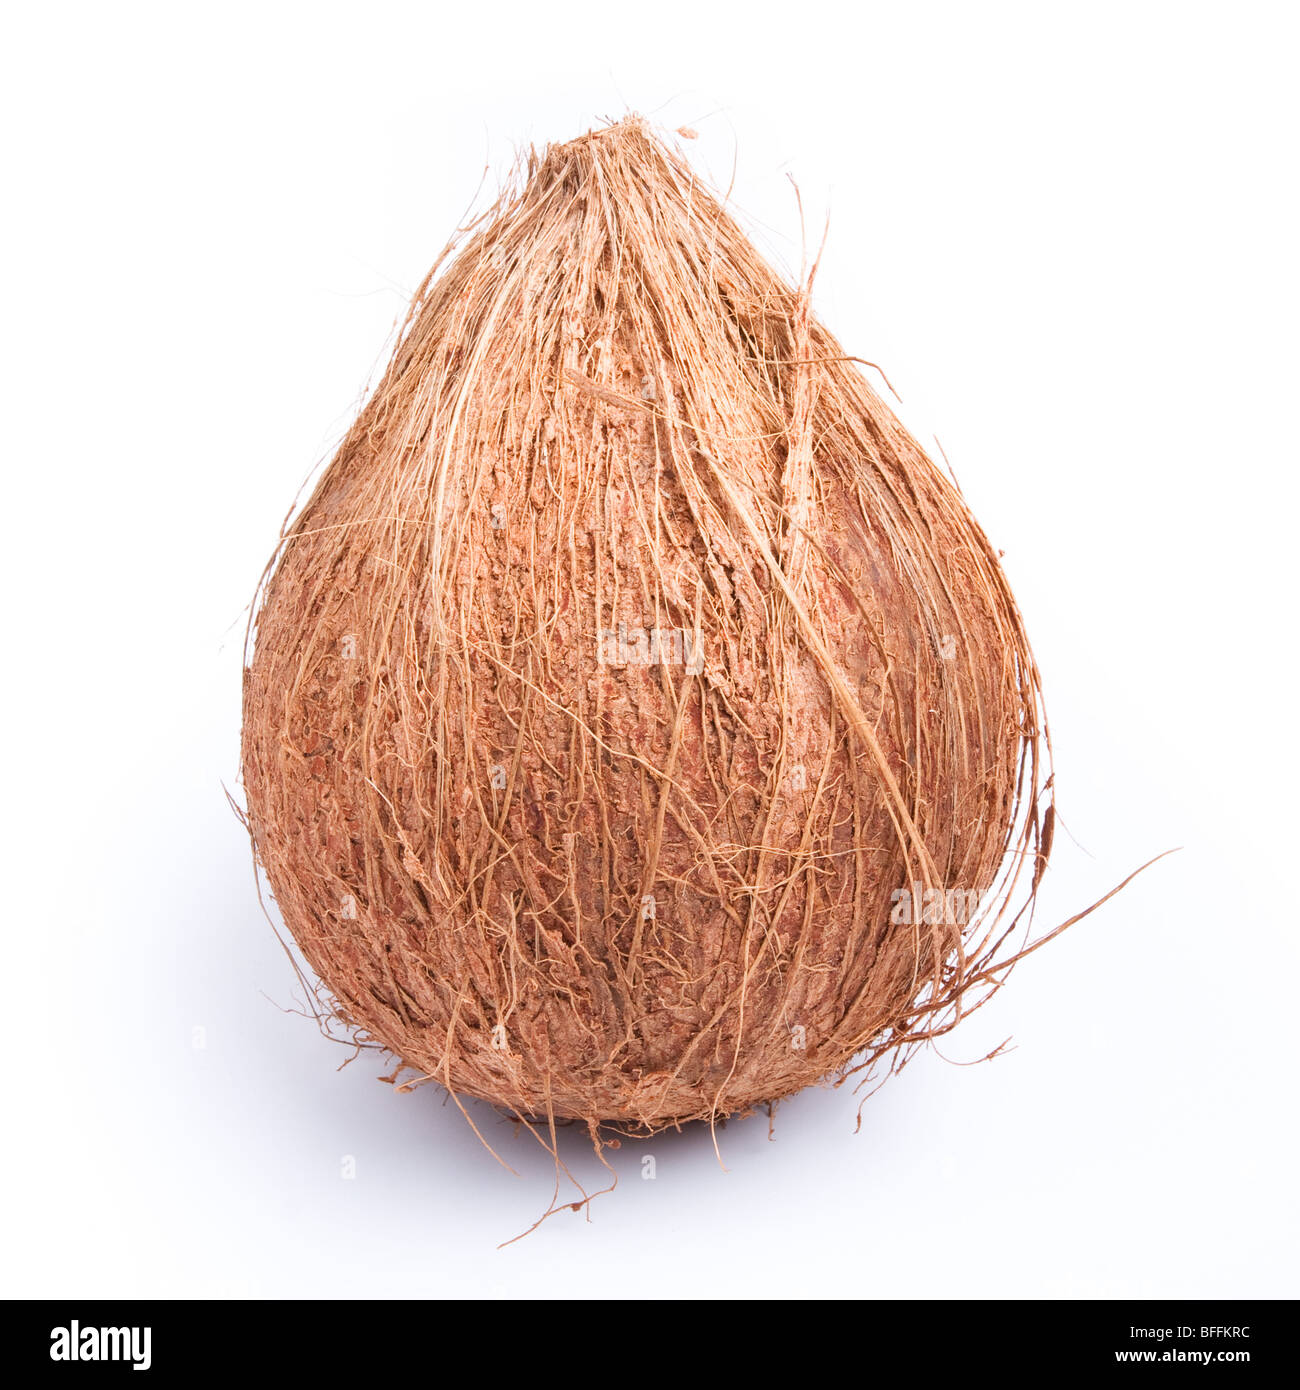 Whole hairy brown coconut isolated against white background. - Stock Image